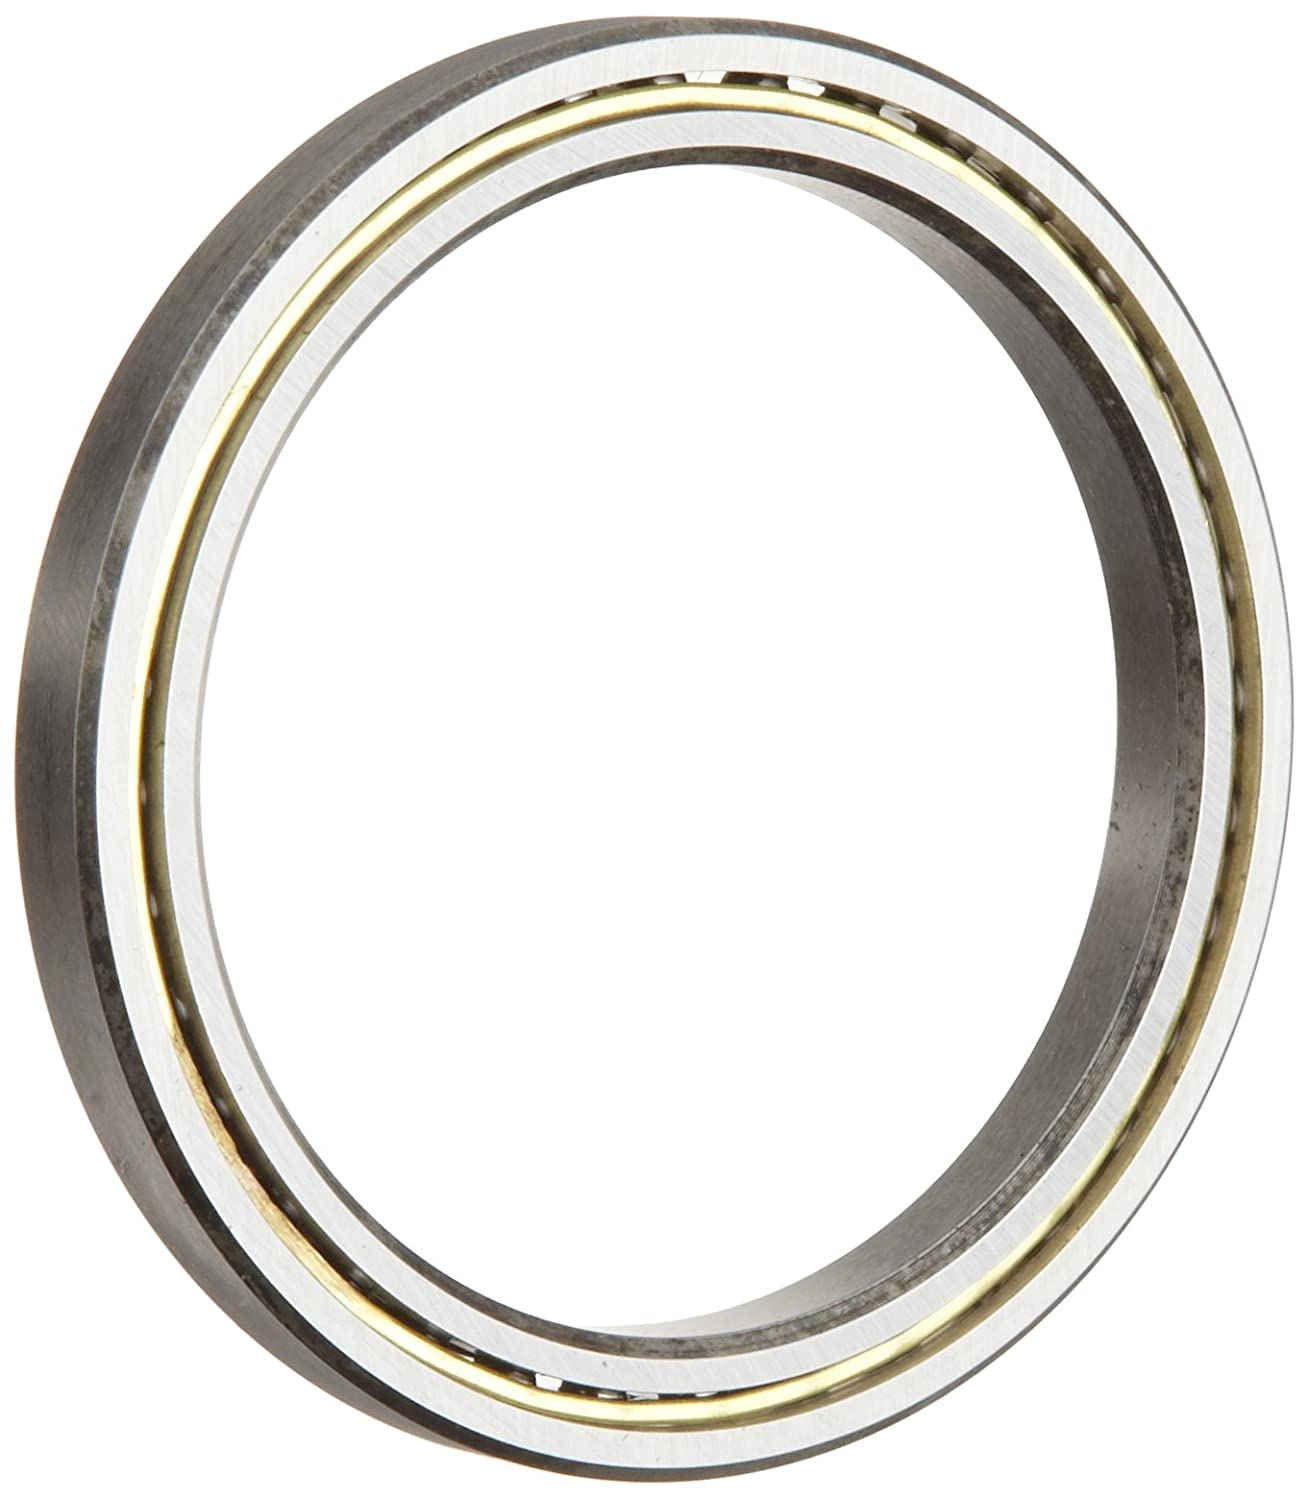 RBC KD110AR0 Thin Section Ball Bearing Angular A-Type Unsealed 11 Bore x 12 OD x 0.50 Width